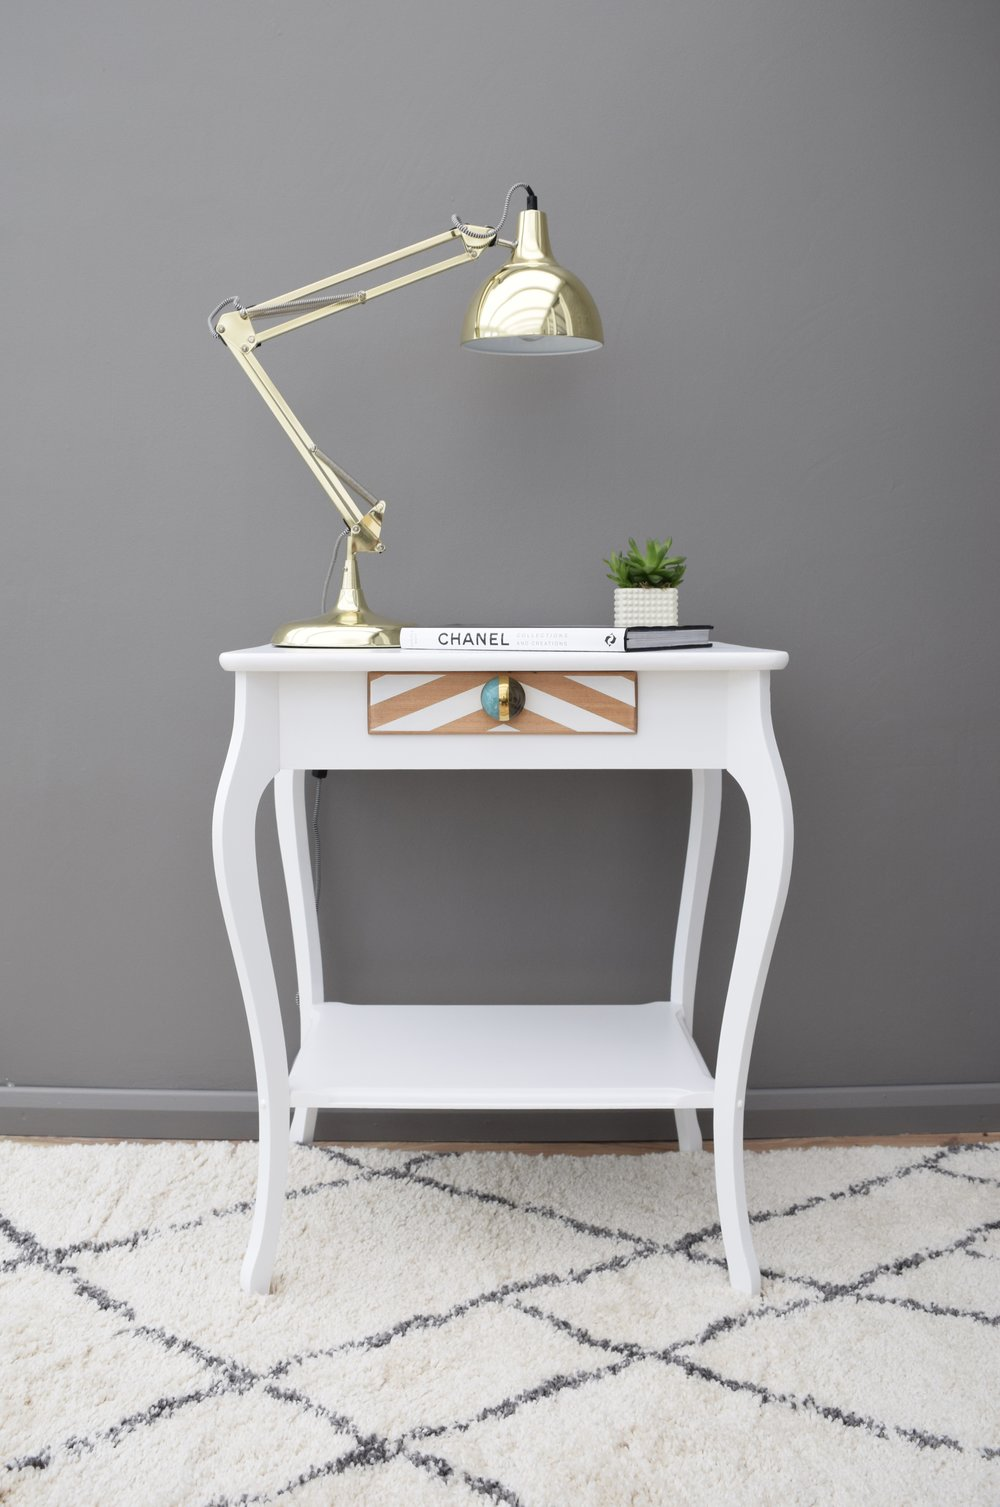 VINTAGE OAK TABLE IN WHITE WITH CHEVRON DESIGN